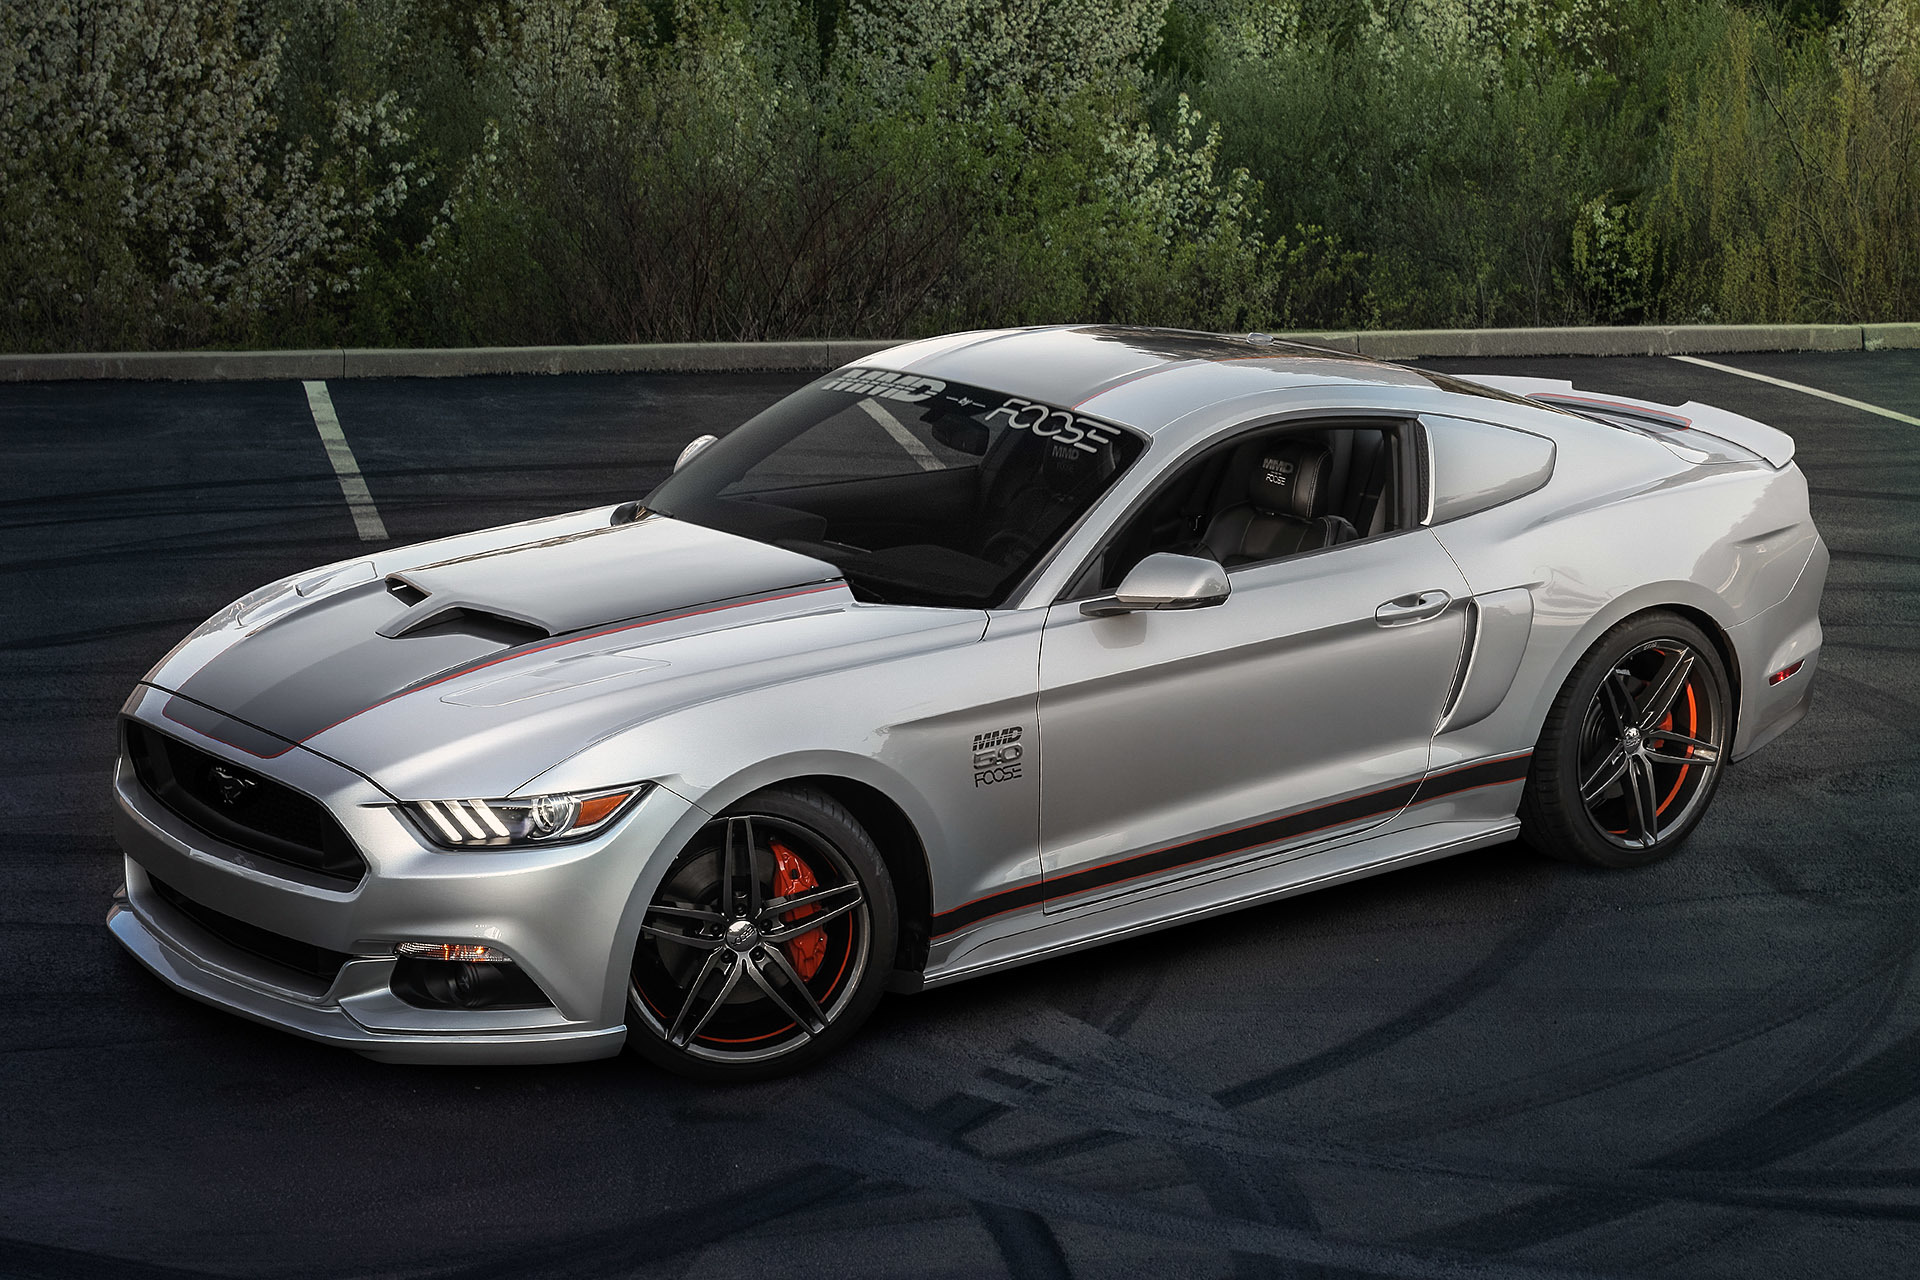 Ford Mustang Shelby Gt500 Eleanor Wallpaper Hd Chip Foose 2015 Mustang 2016 Camaro Production Audi R8 E